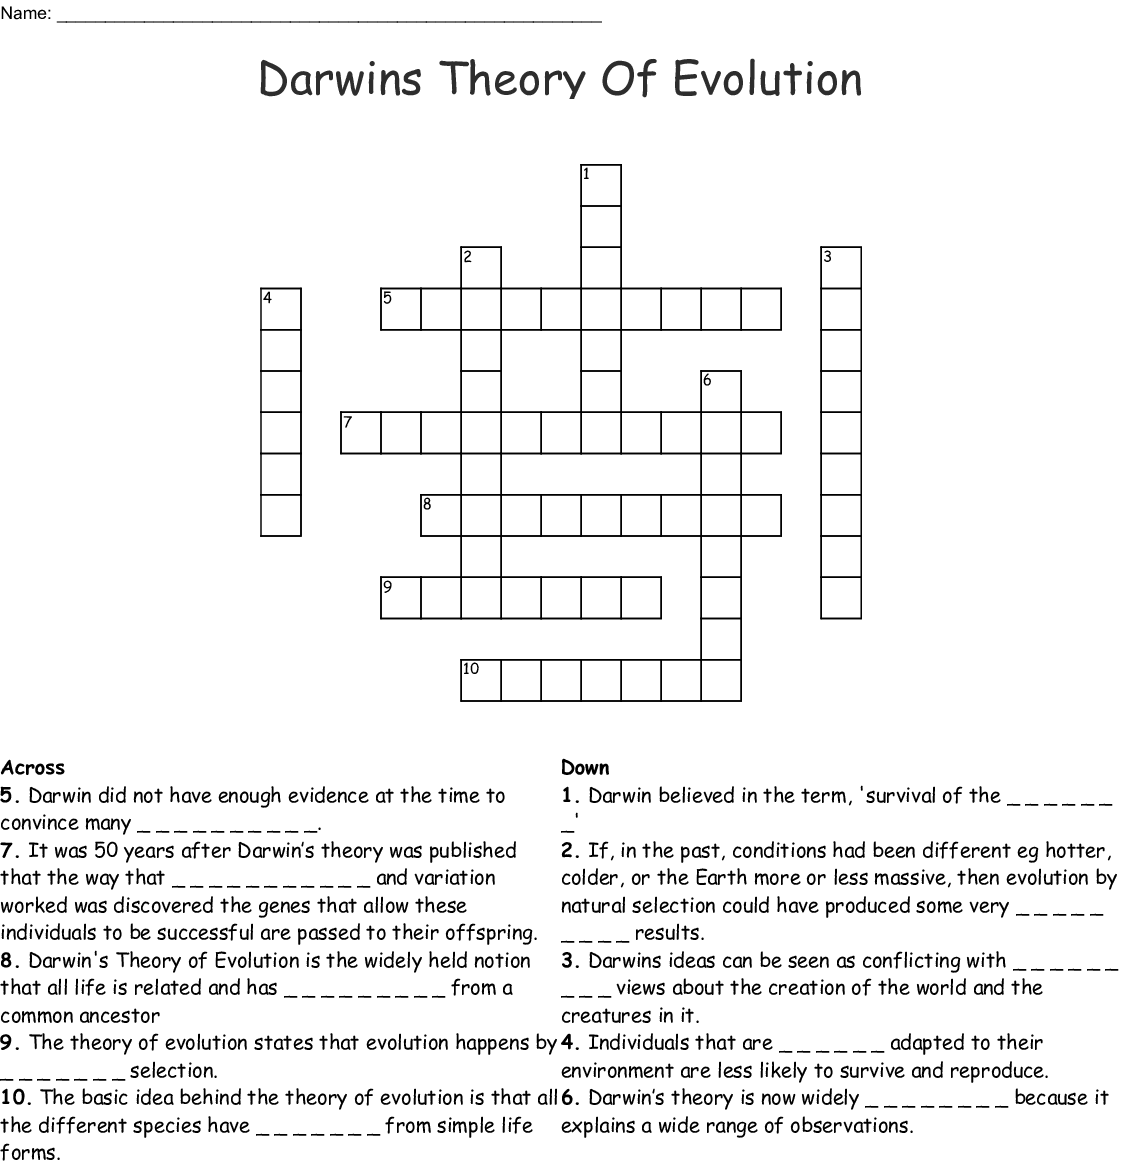 Darwins Theory Of Evolution Worksheet Answers